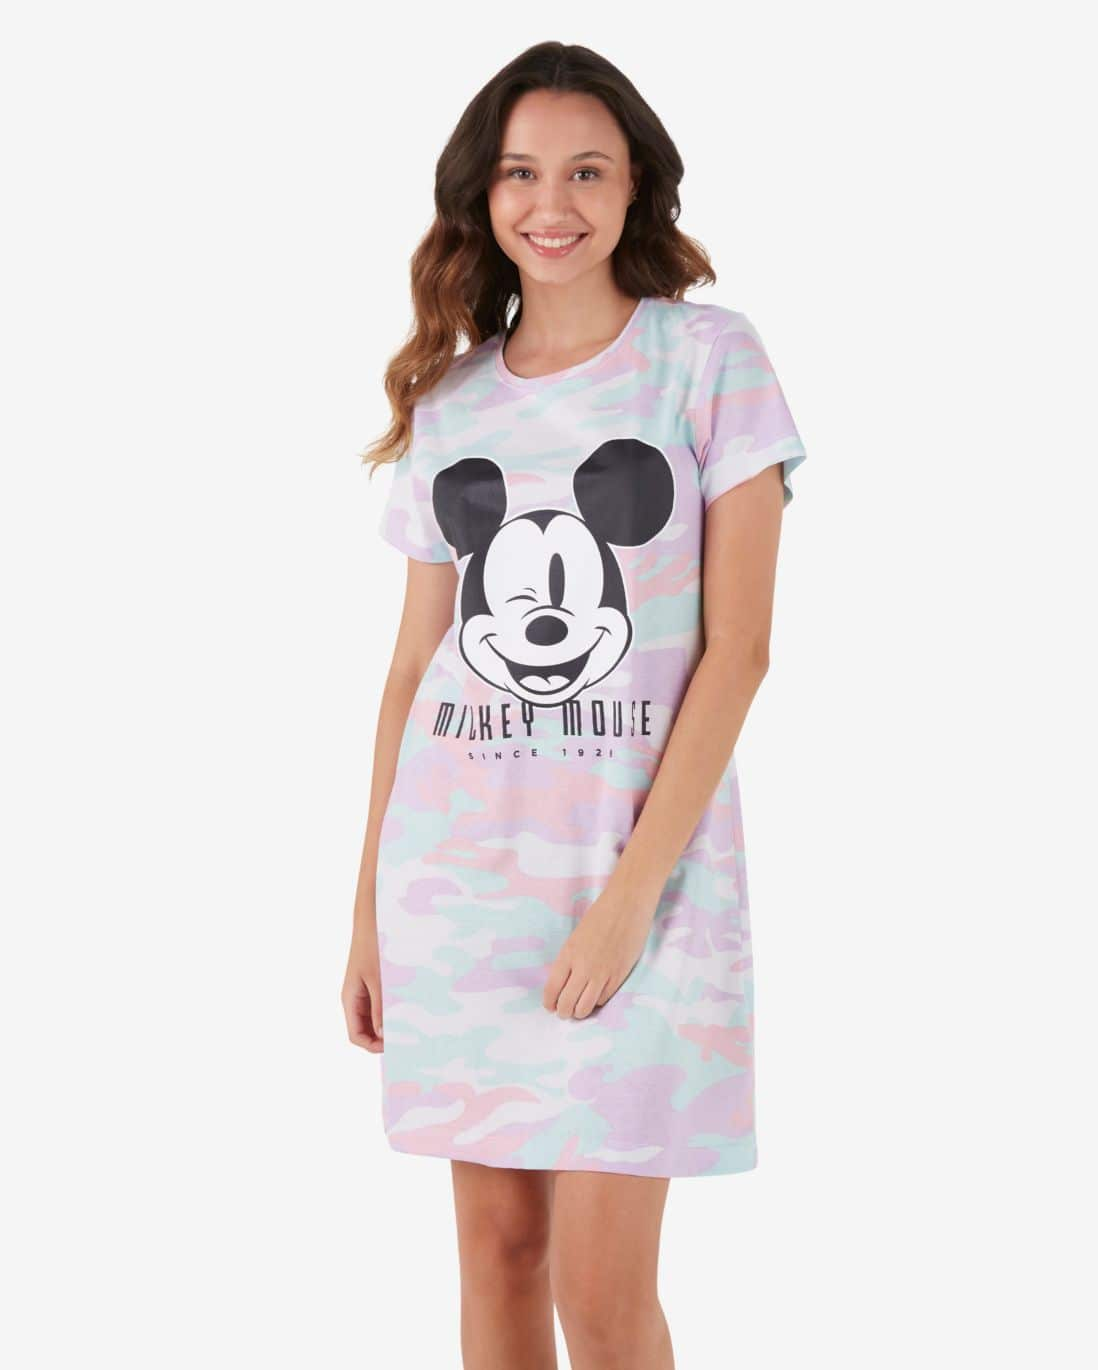 Camisola Camuflada Mickey Mouse - Multicor